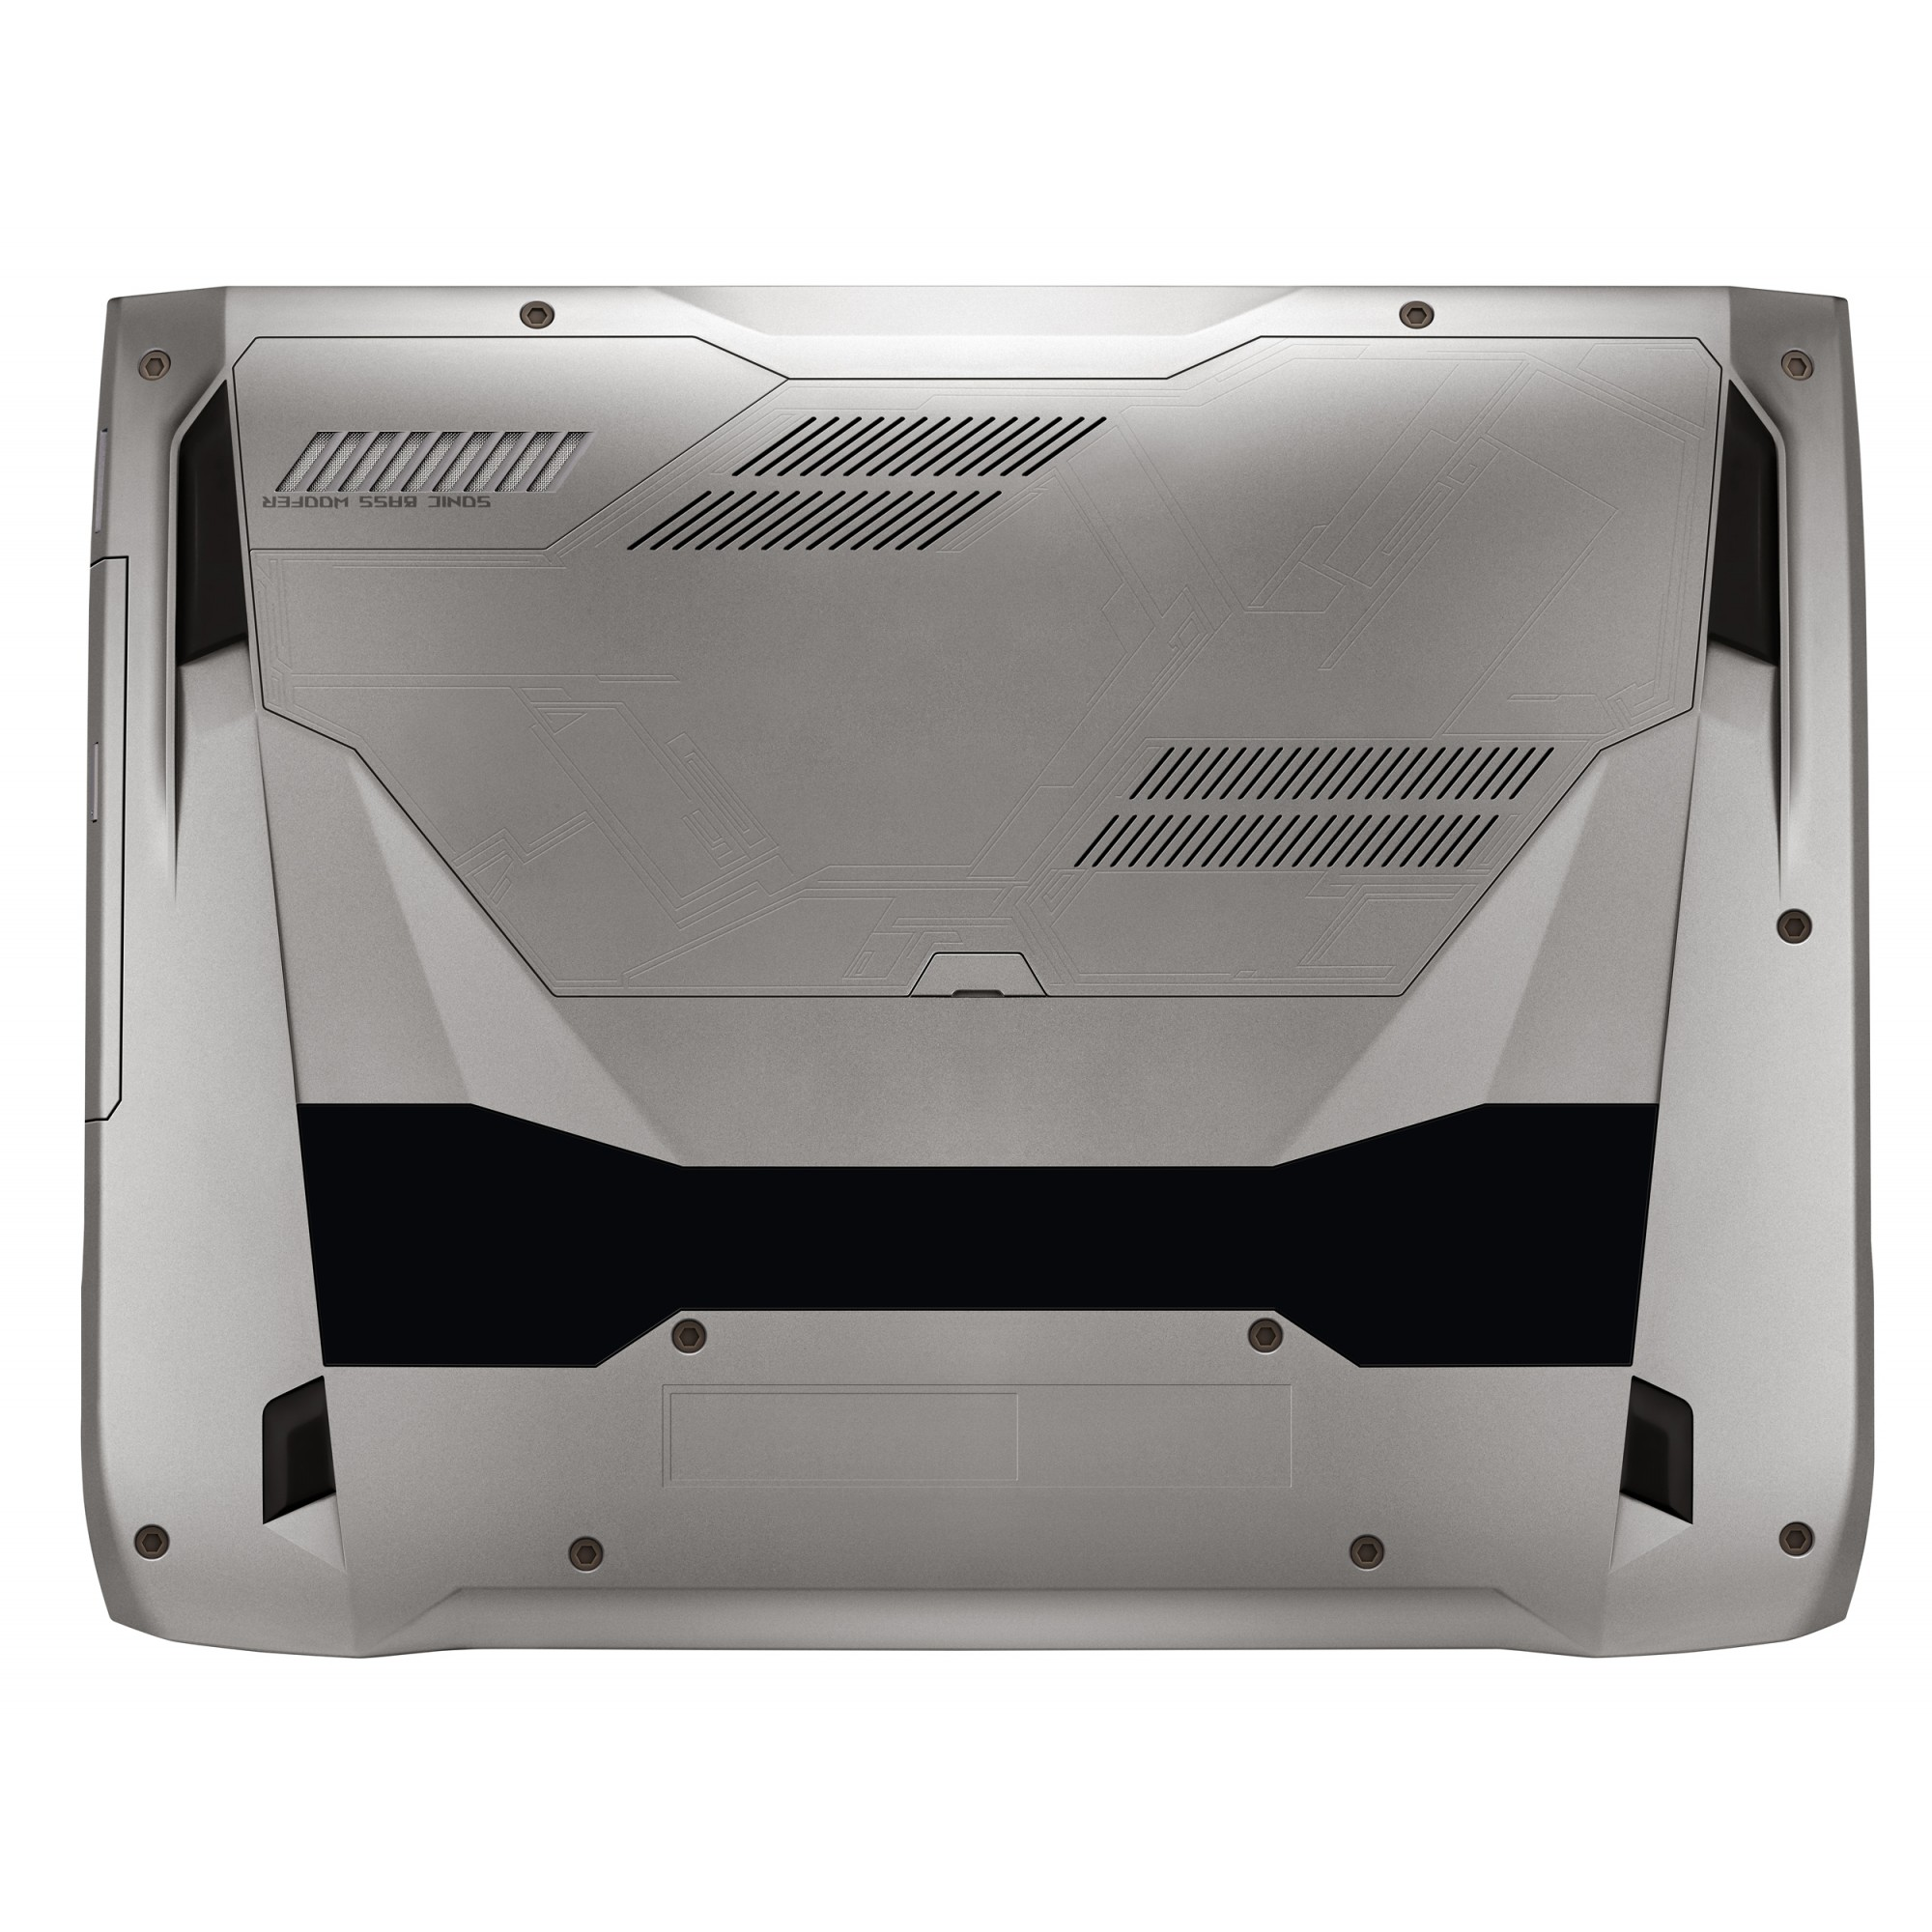 ASUS ROG G752VY G752VY GC110T